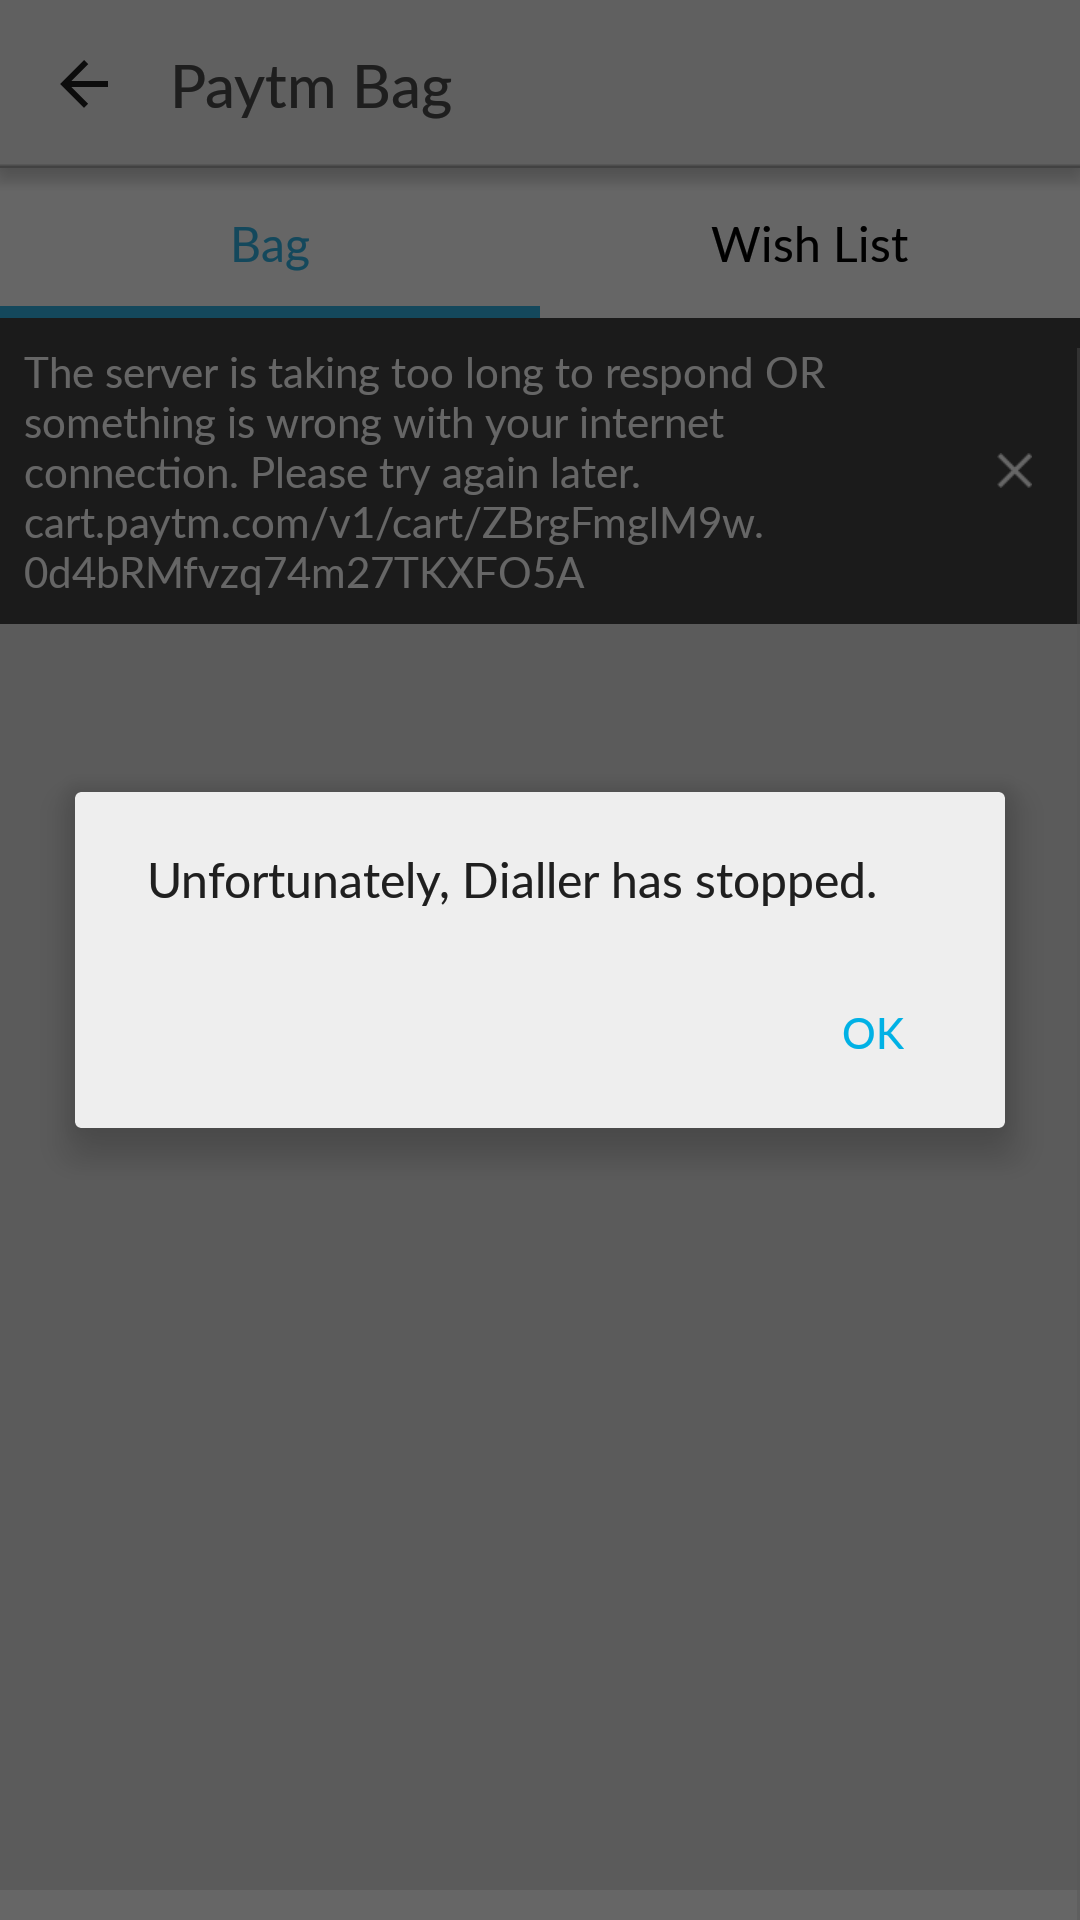 Two Dialler Apps on OnePlus One - OnePlus Community